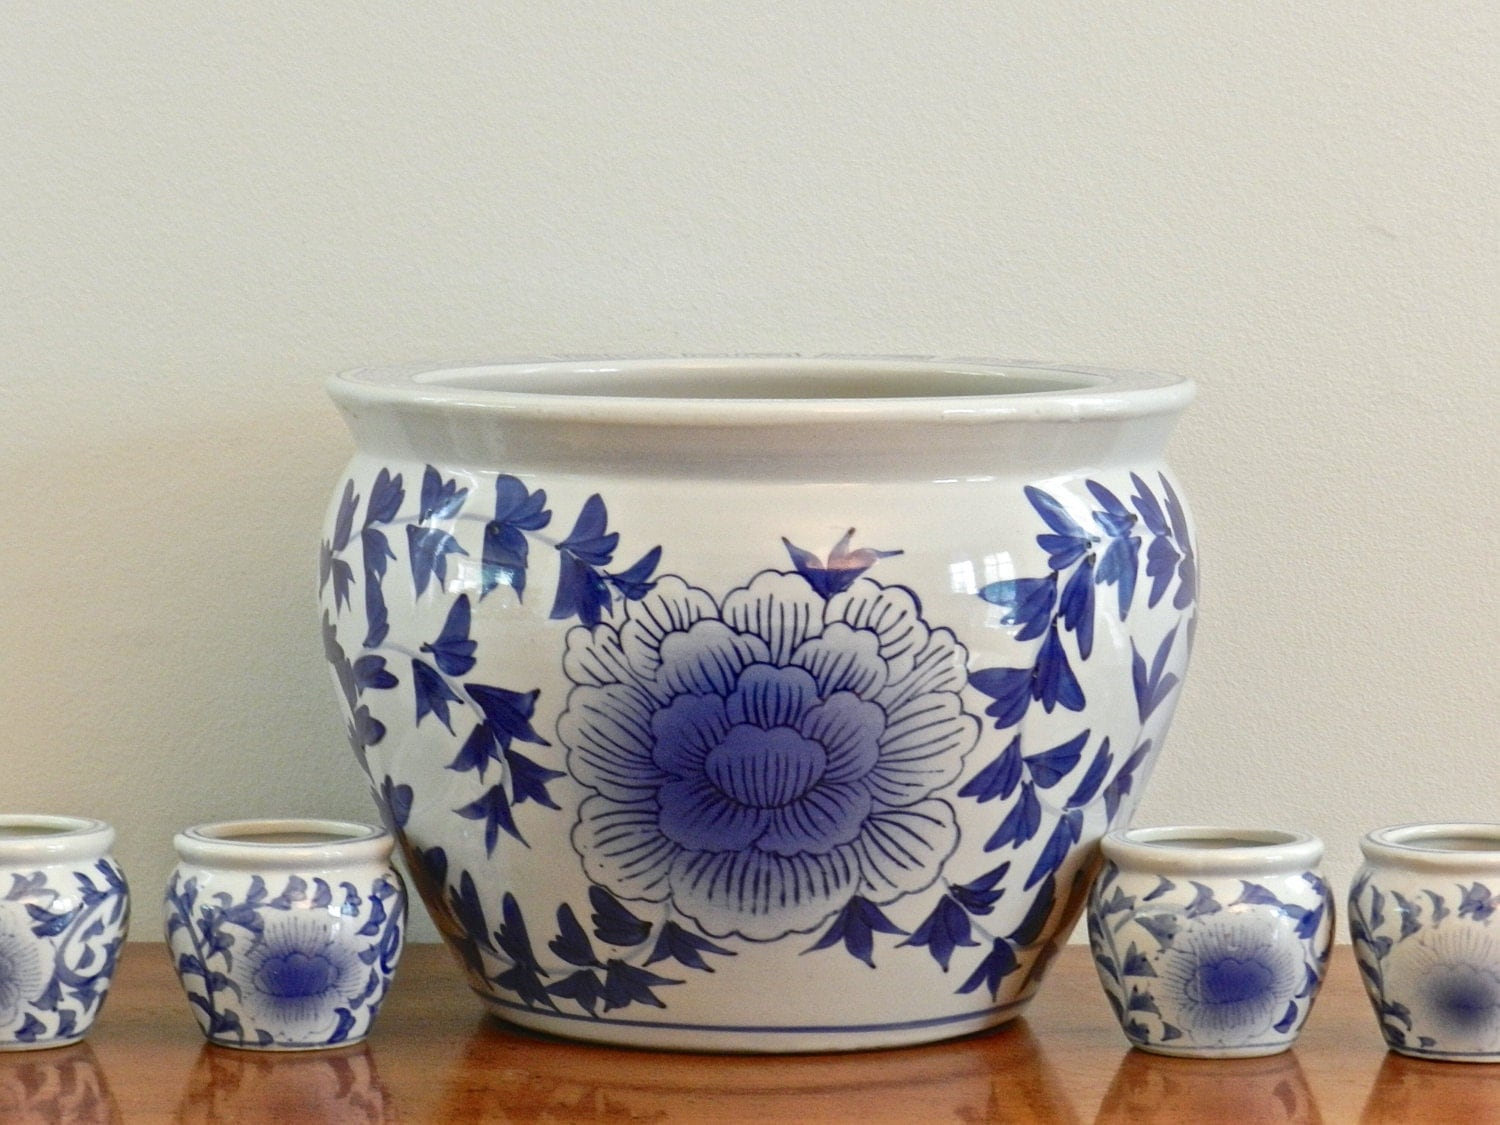 Large Vintage Asian Planter Blue White Ceramic Planter Flower